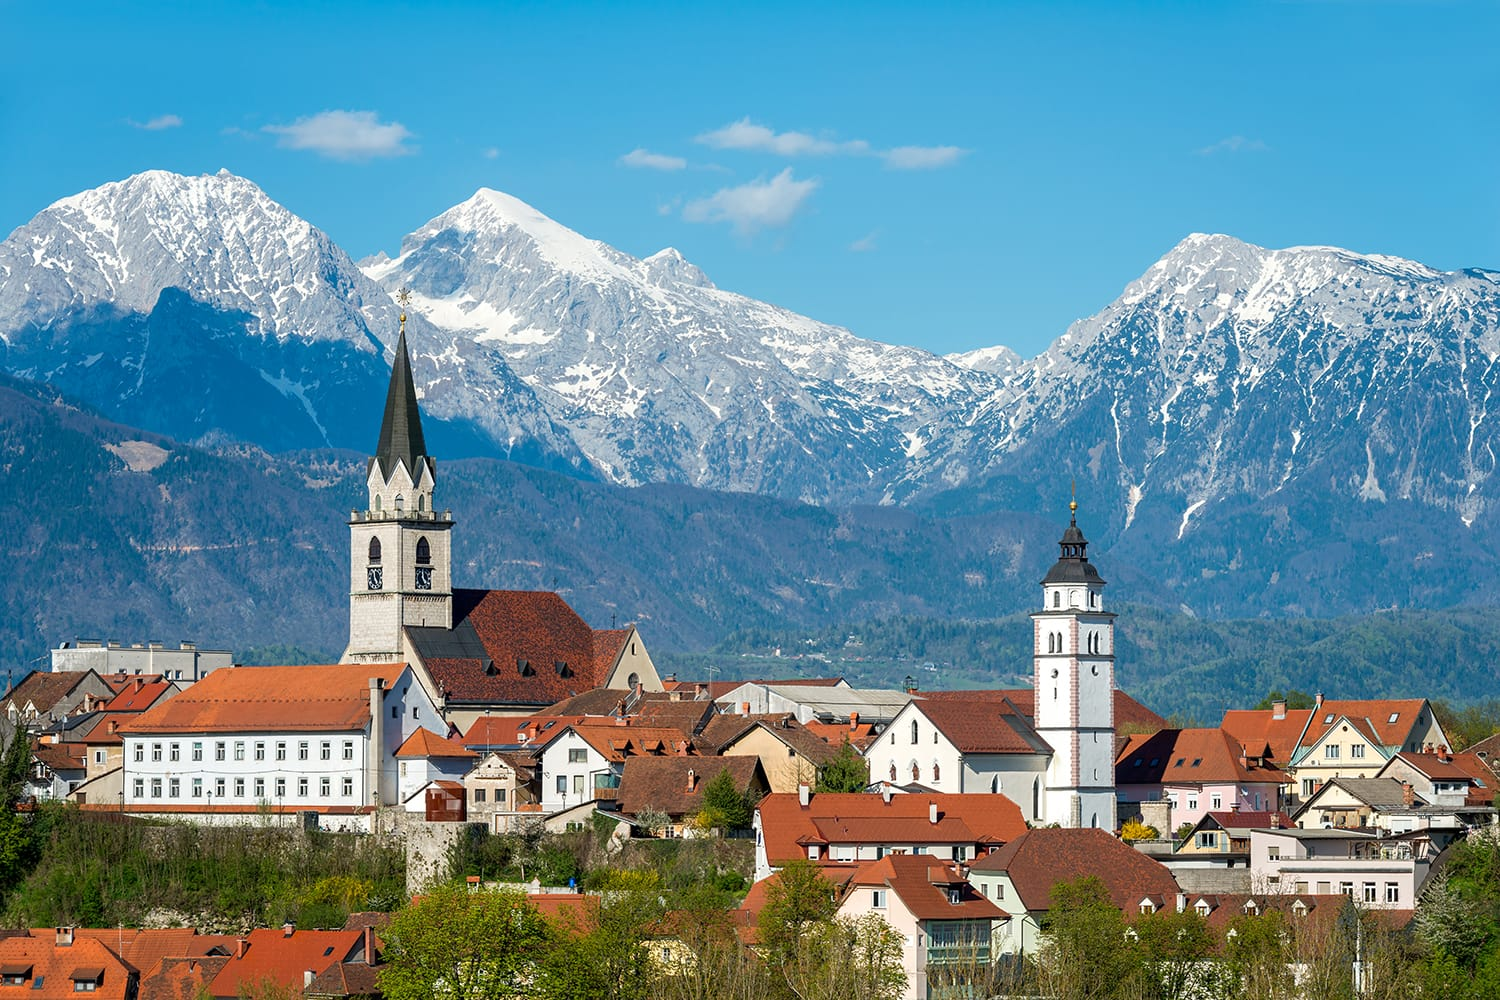 Panorama view Kranj in Slovenia with St. Cantianus Church in the foreground and the Kamnik Alps in the background